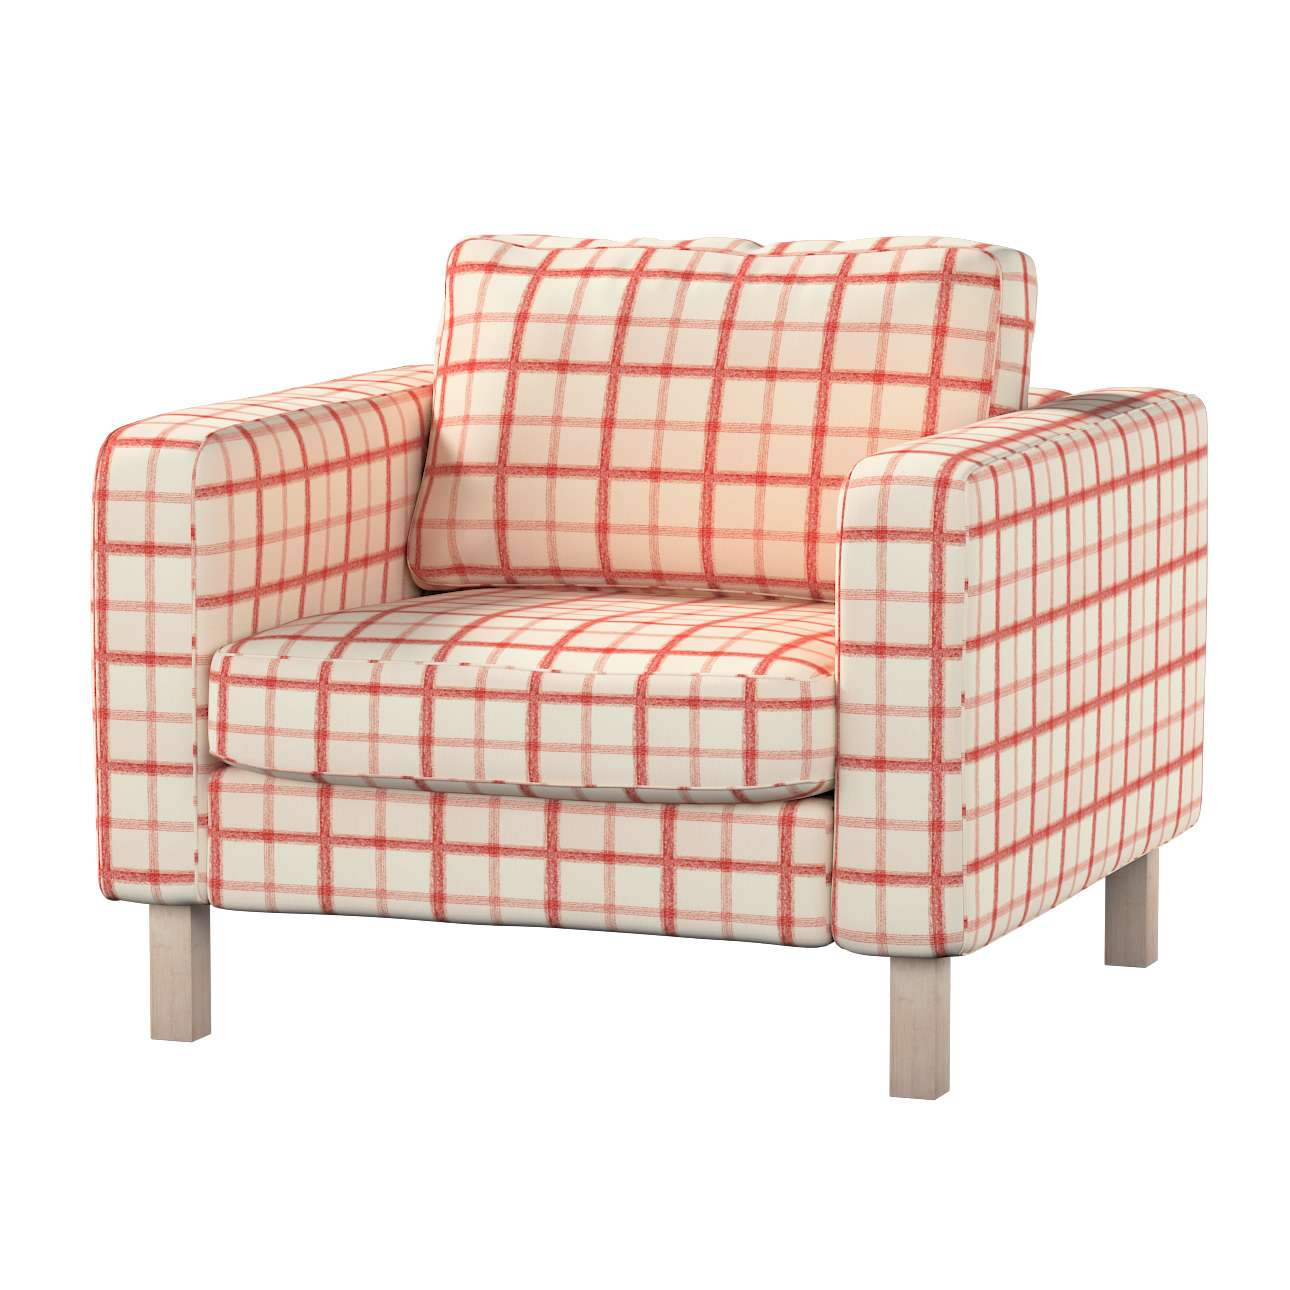 Karlstad armchair cover Karlstad armchair cover in collection Avinon, fabric: 131-15